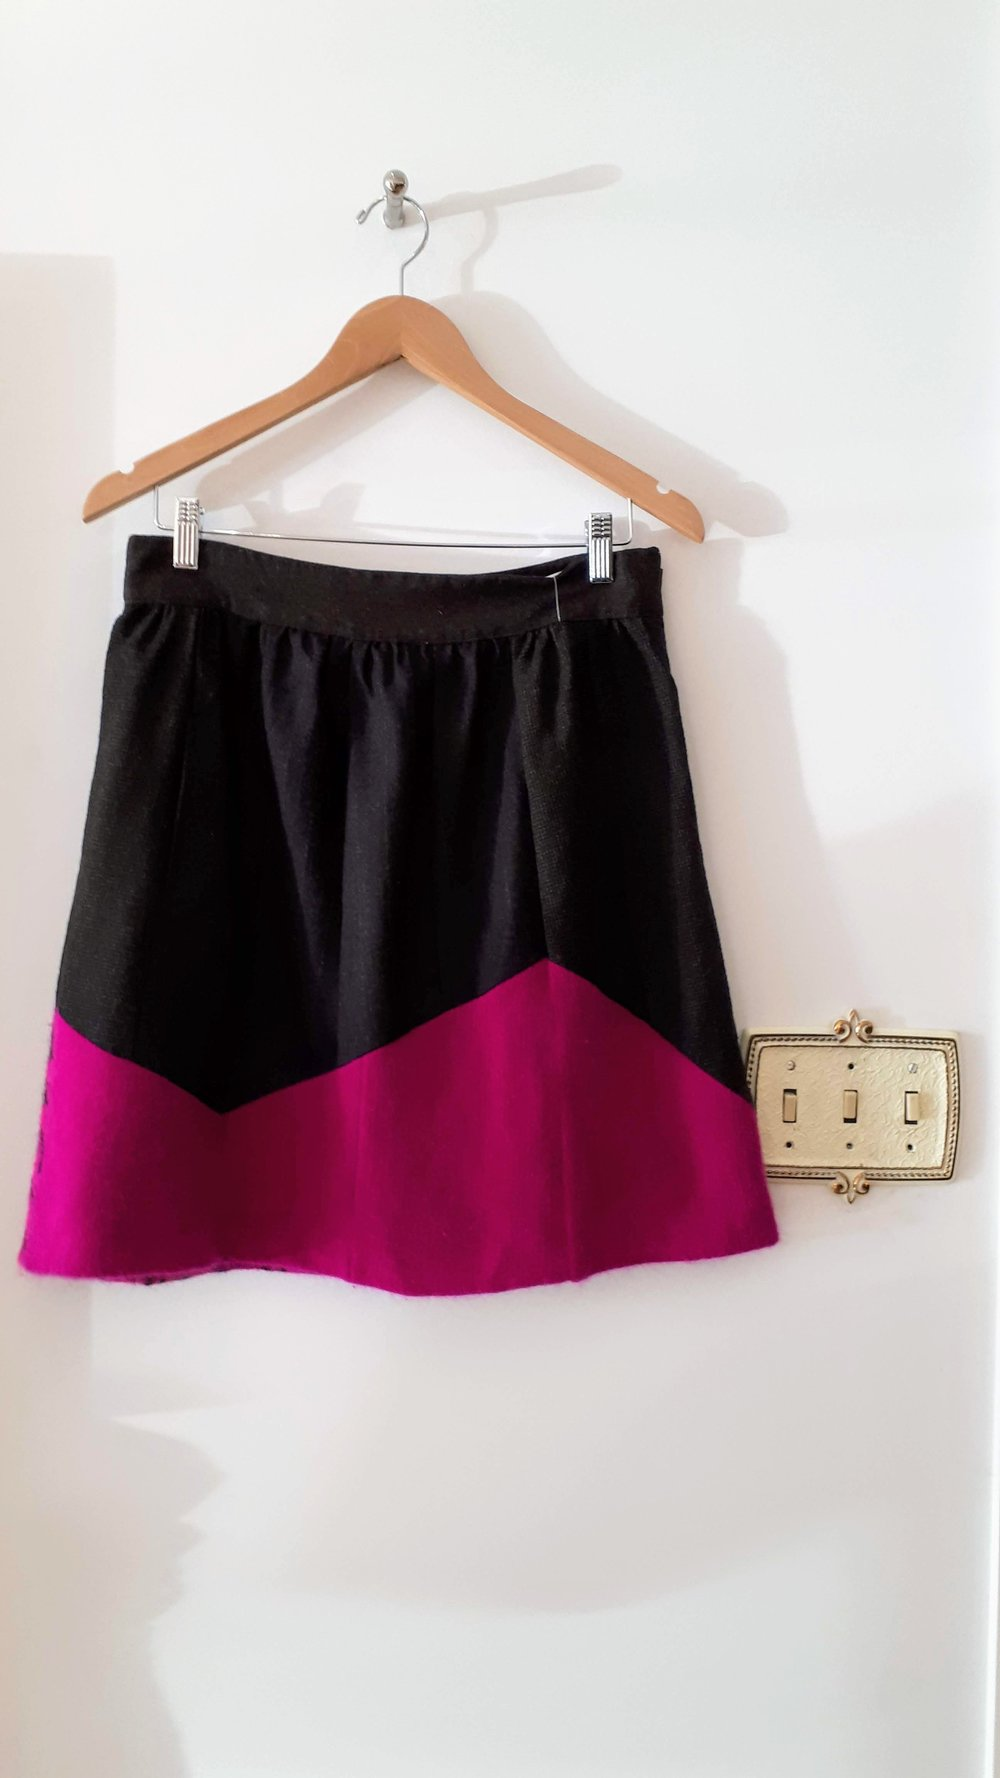 PreLoved skirt; Size M, $34